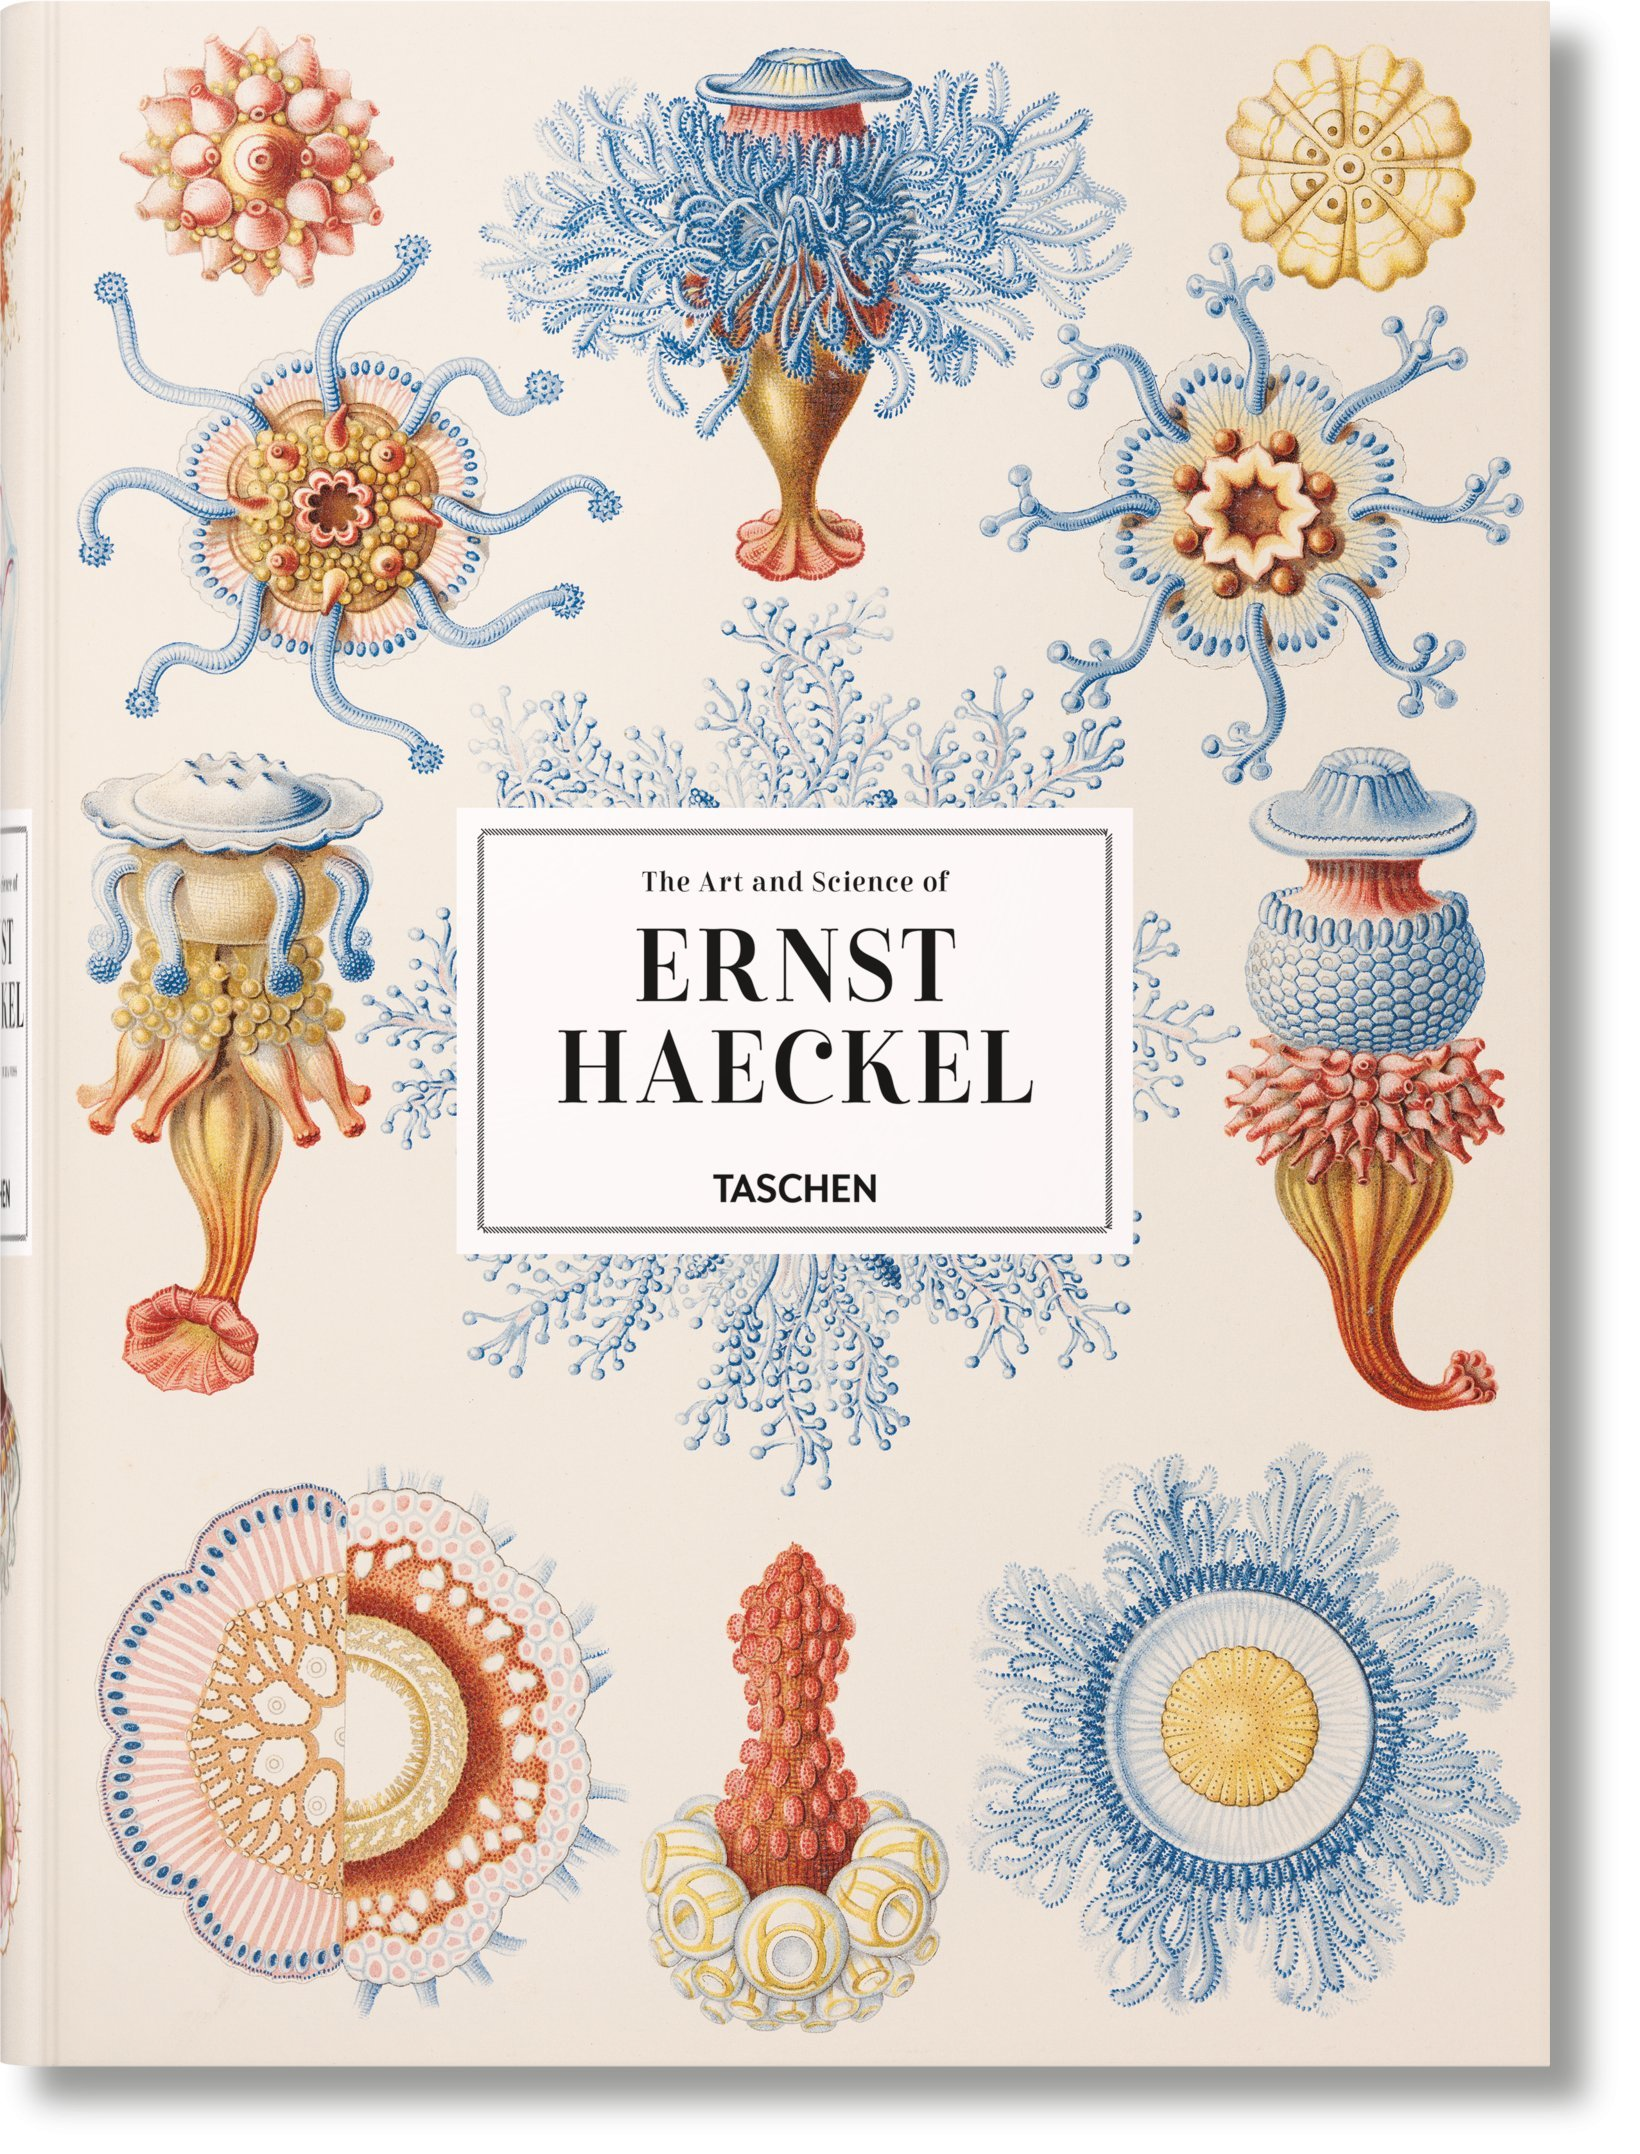 The Art and Science of Ernst Haeckel 1